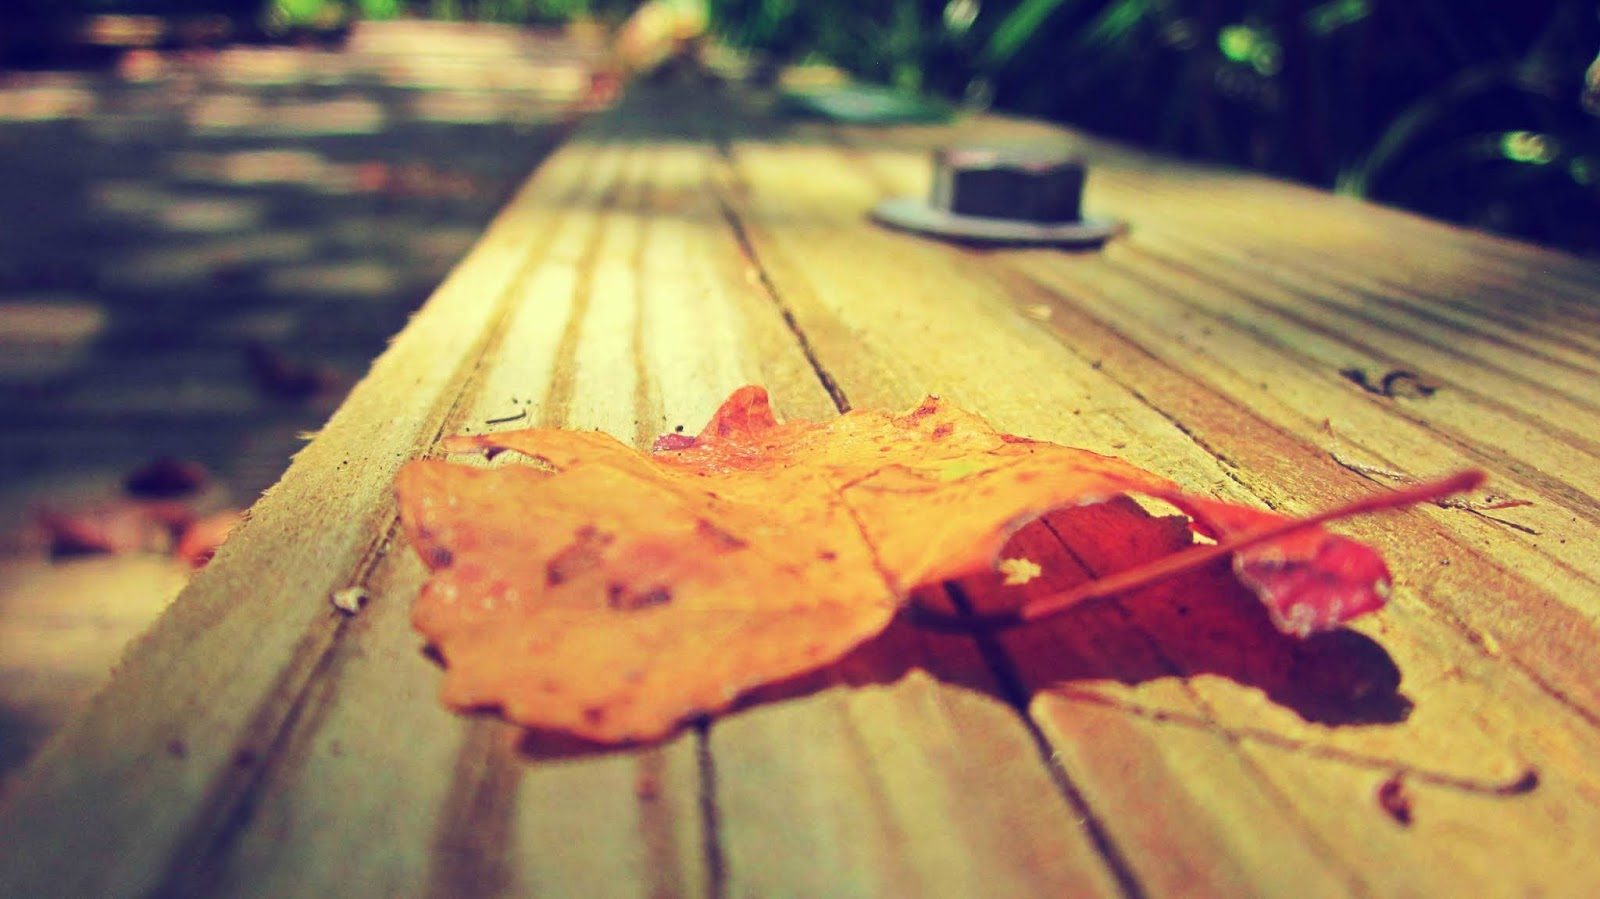 A crisp fall leaf on a boardwalk in mother nature in Boca Ciega Millennium Park in Seminole, Florida